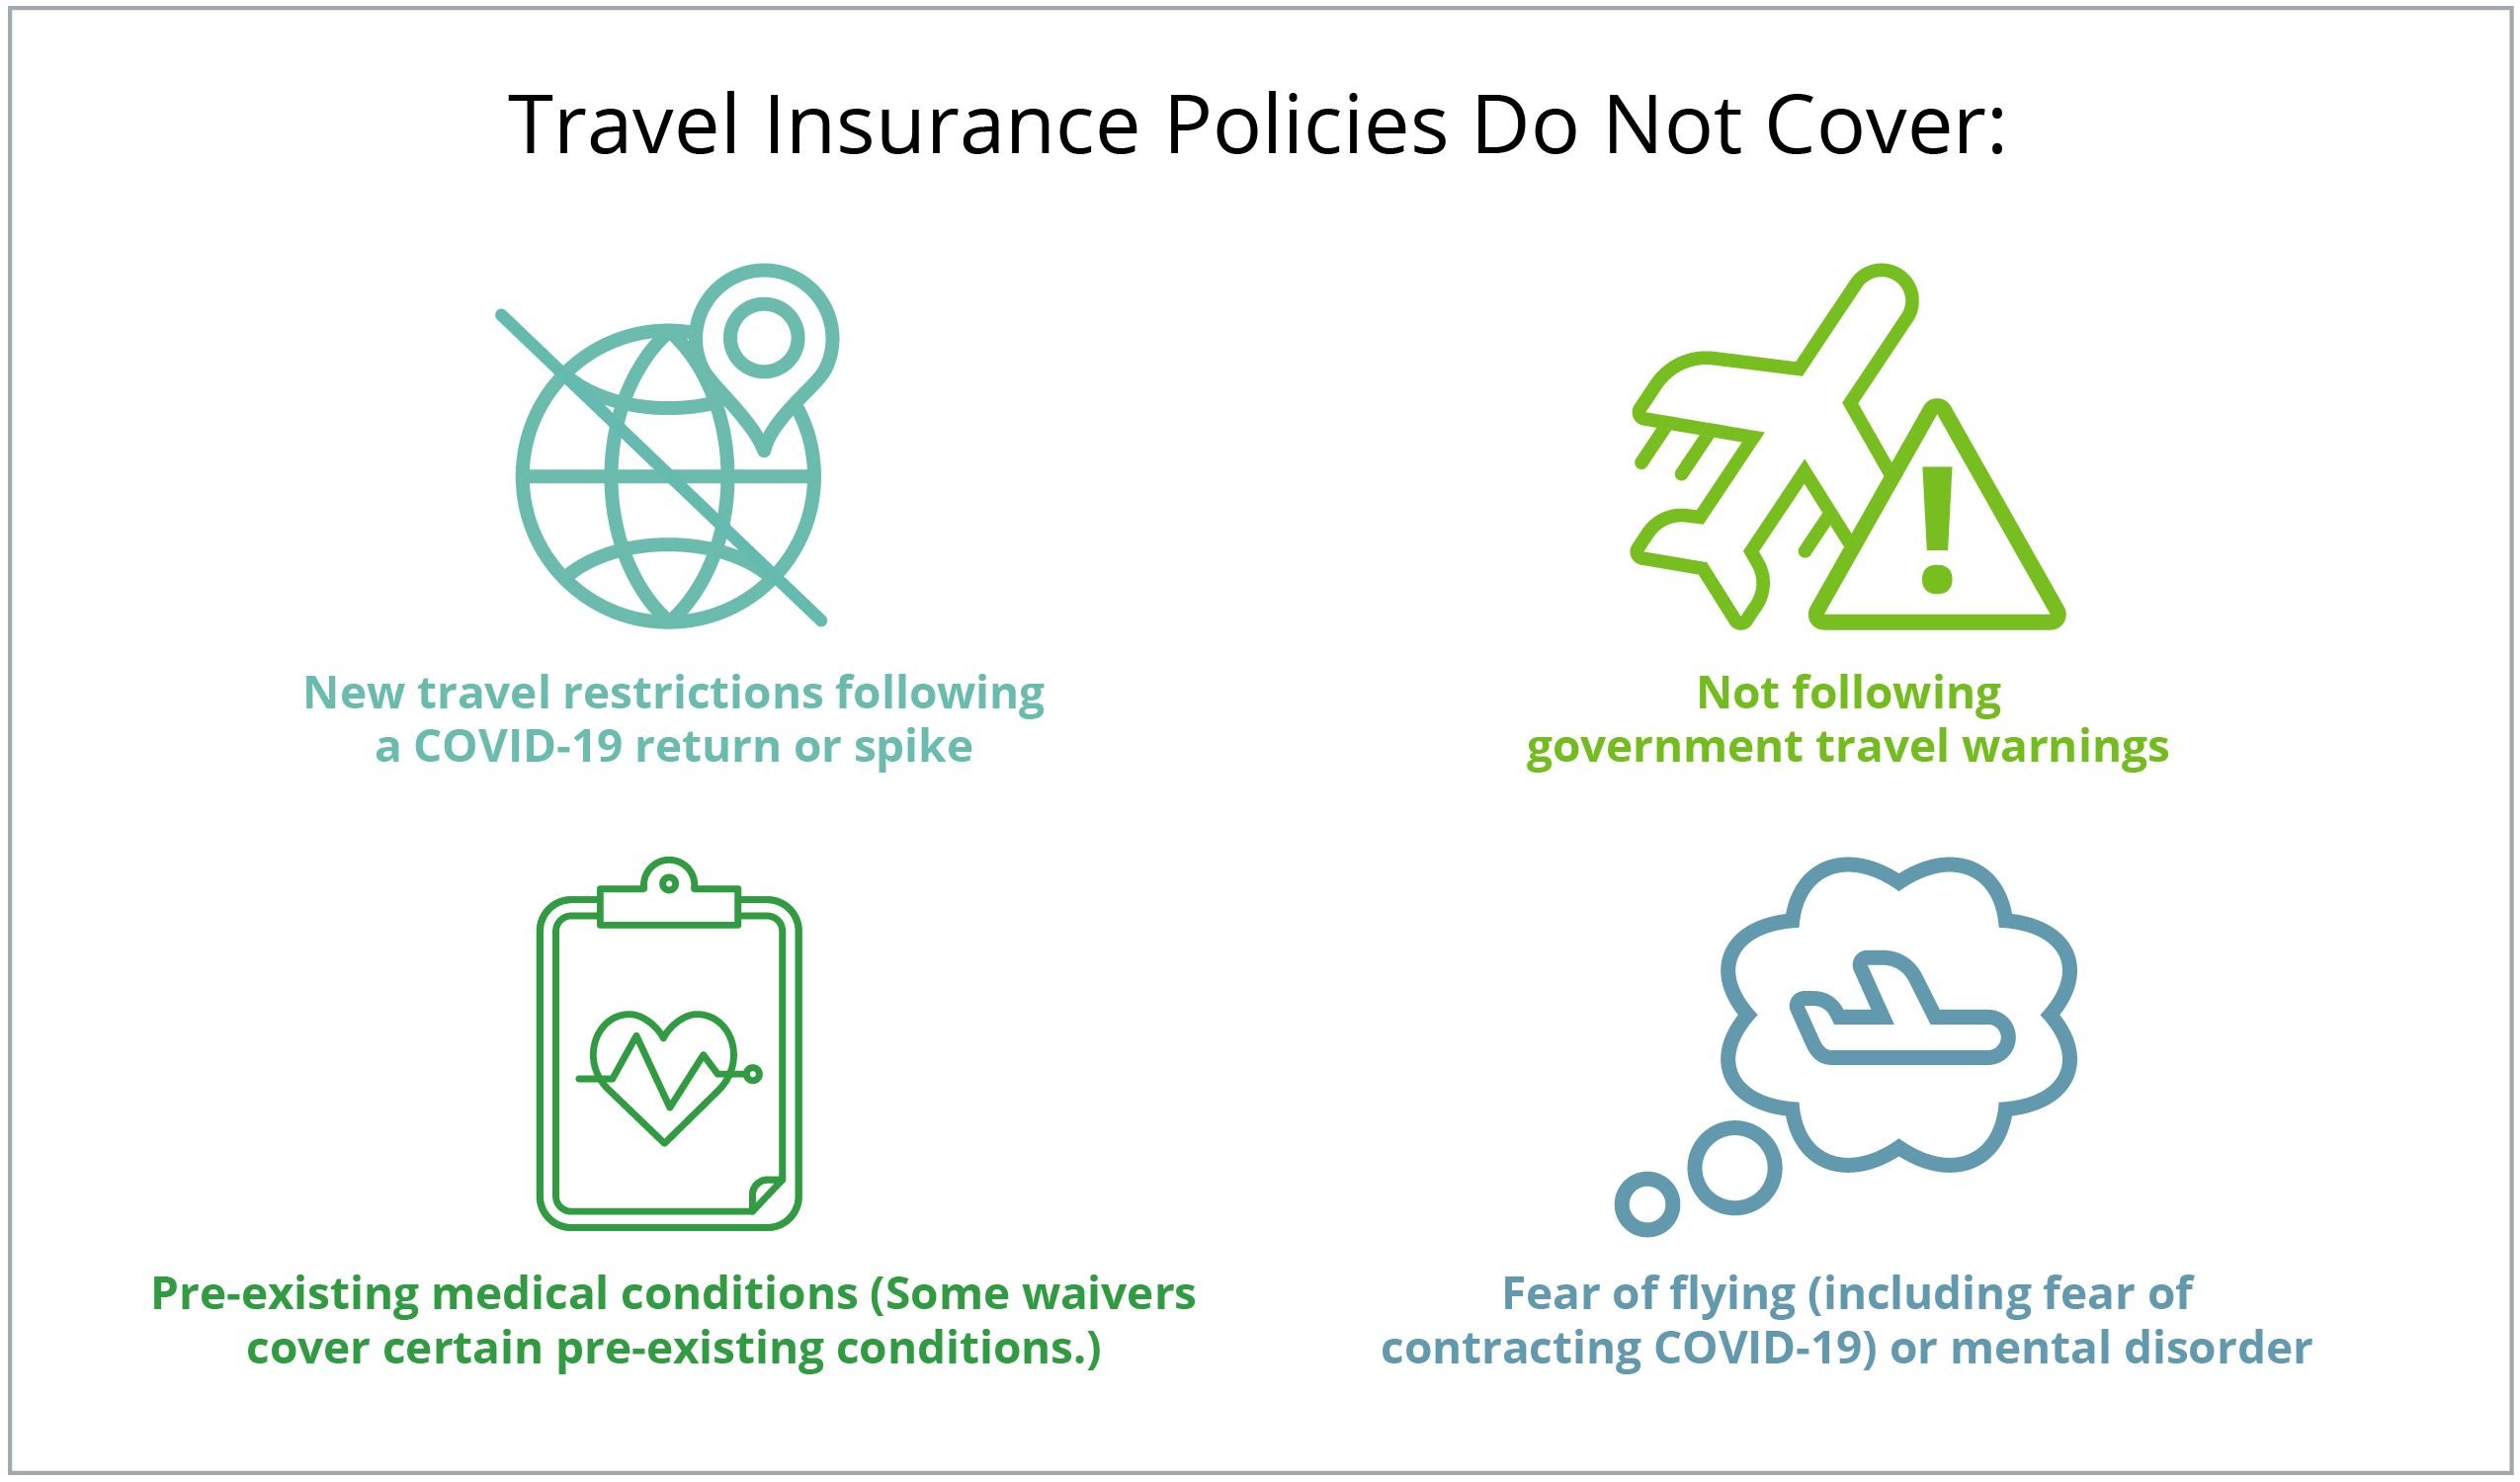 travel insurance policies do not cover travel restrictions following covid-19 spikes and more